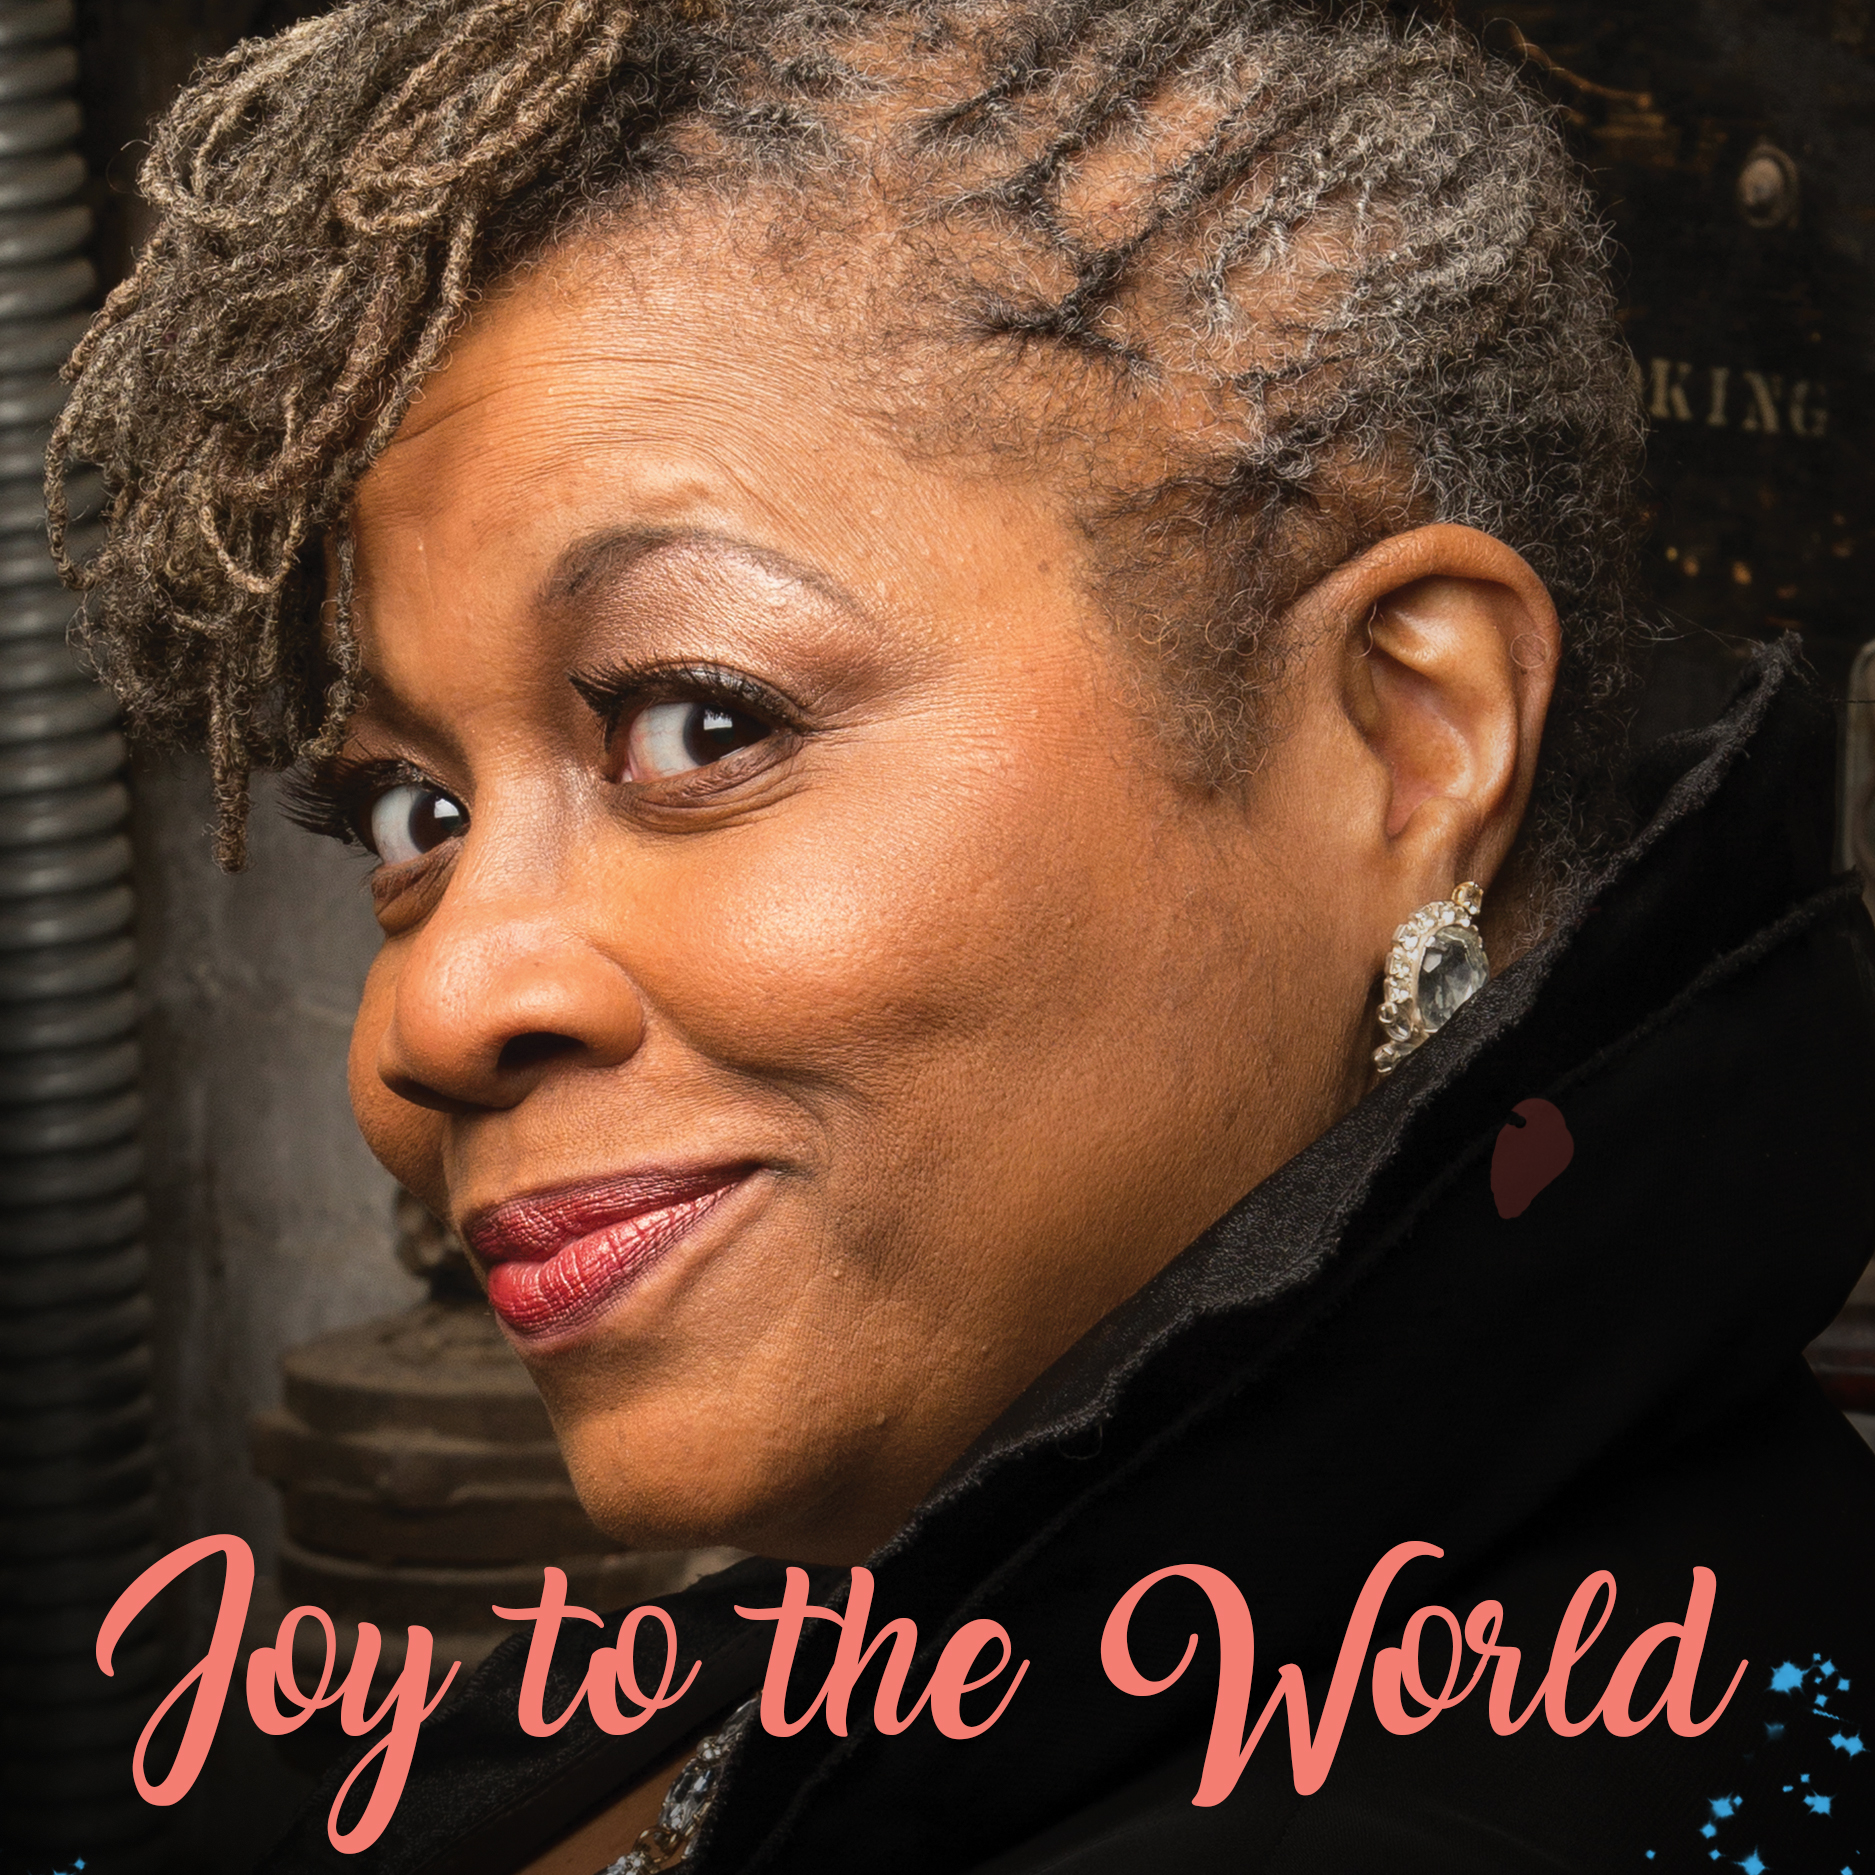 Joy to the World_FINAL_WEBSITE SQUARE 6-25x9-25.jpg